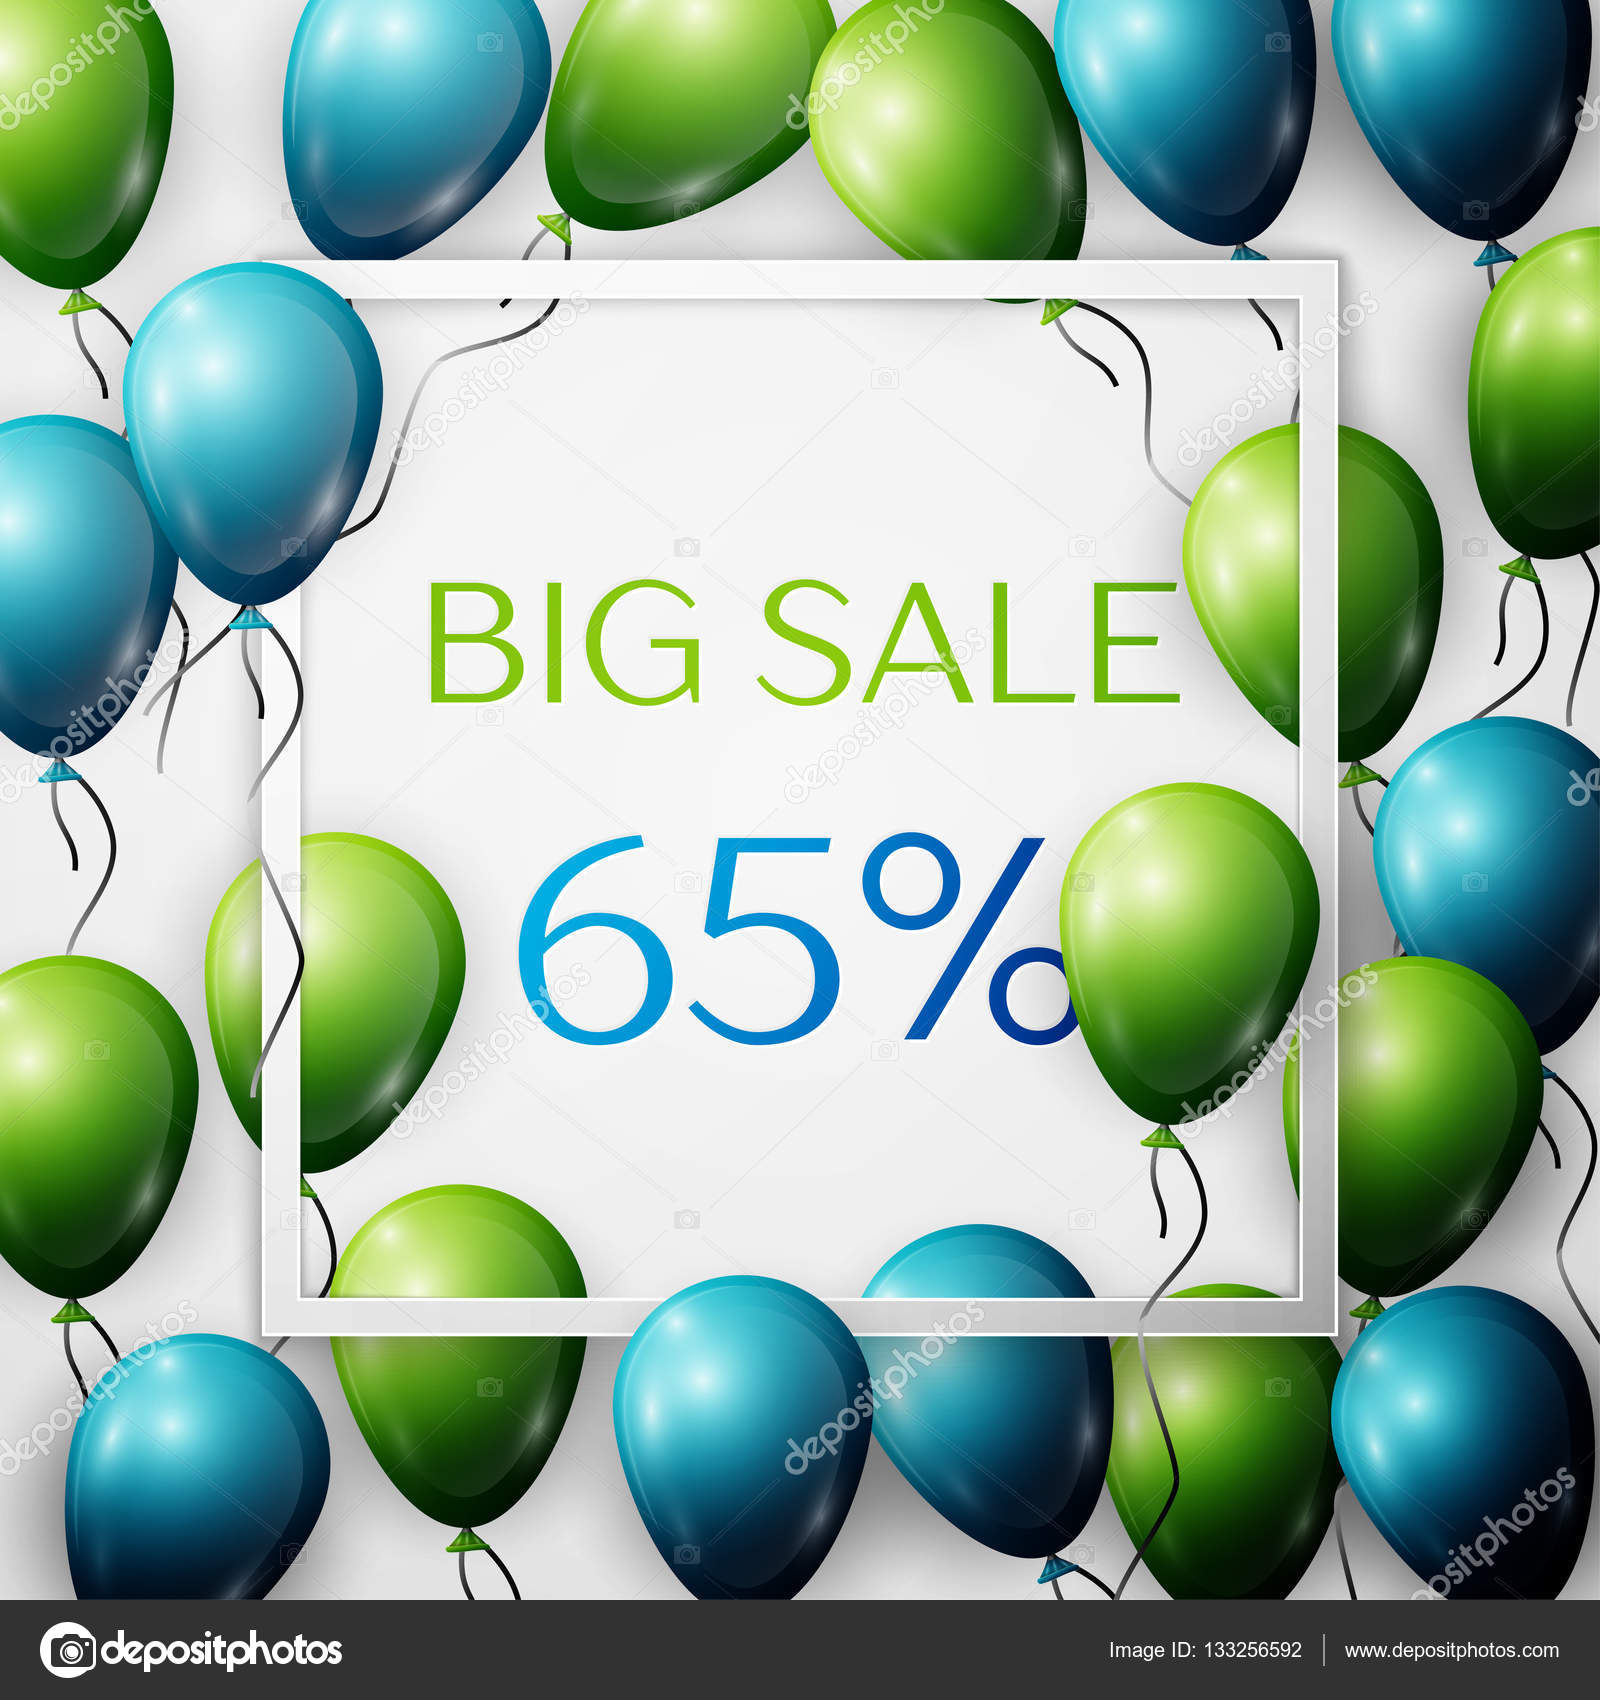 Green and blue balloons - Realistic Green And Blue Balloons With Black Ribbon In Centre Text Big Sale 65 Percent Discounts